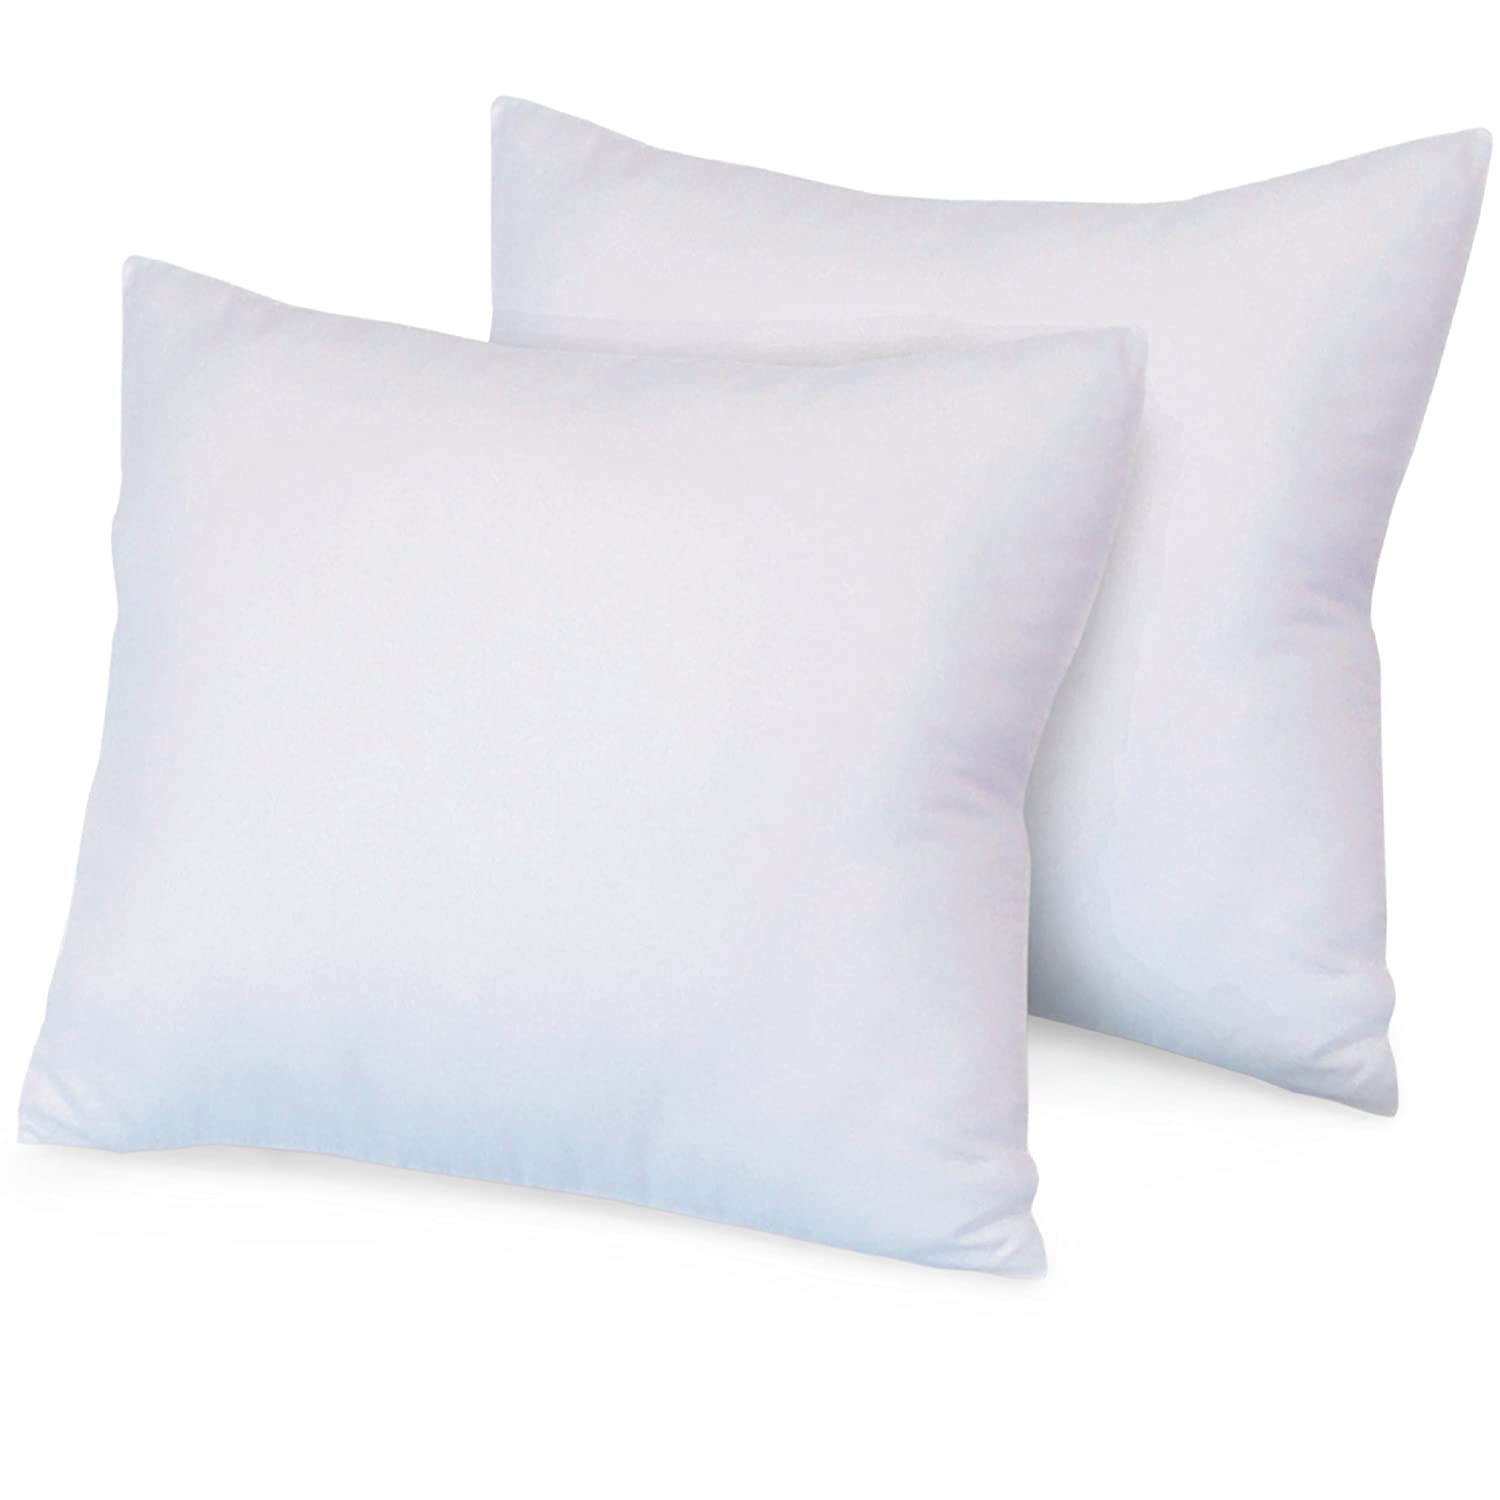 Natures Rest Luxurious 28 By Inch Euro Square Pillows